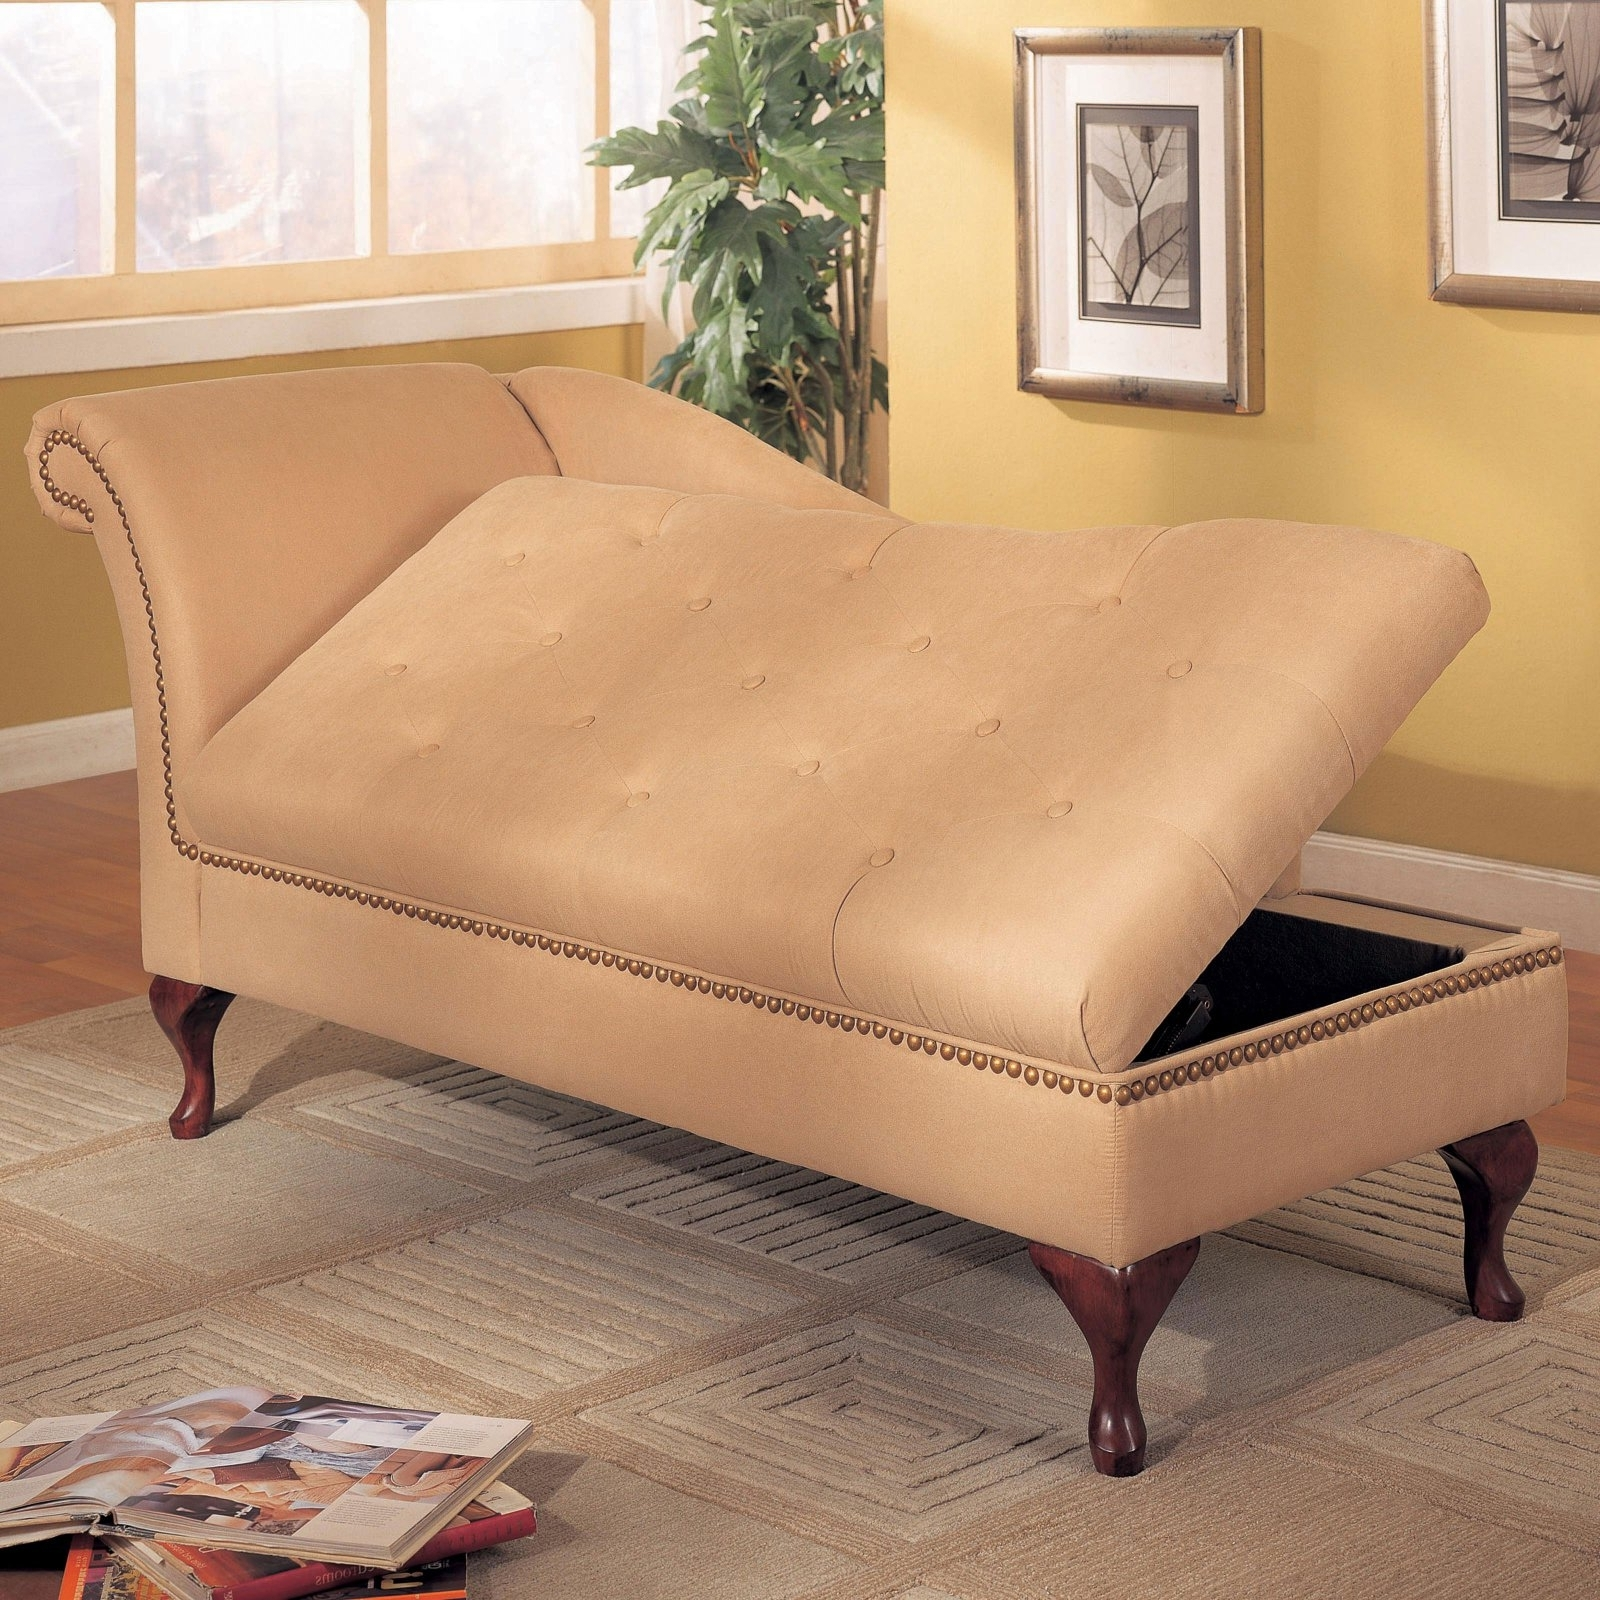 Recent Small Chaise Lounge Chair For Room Awesome Bedroom Chairs Ideas Intended For Chaise Lounges For Bedrooms (View 13 of 15)